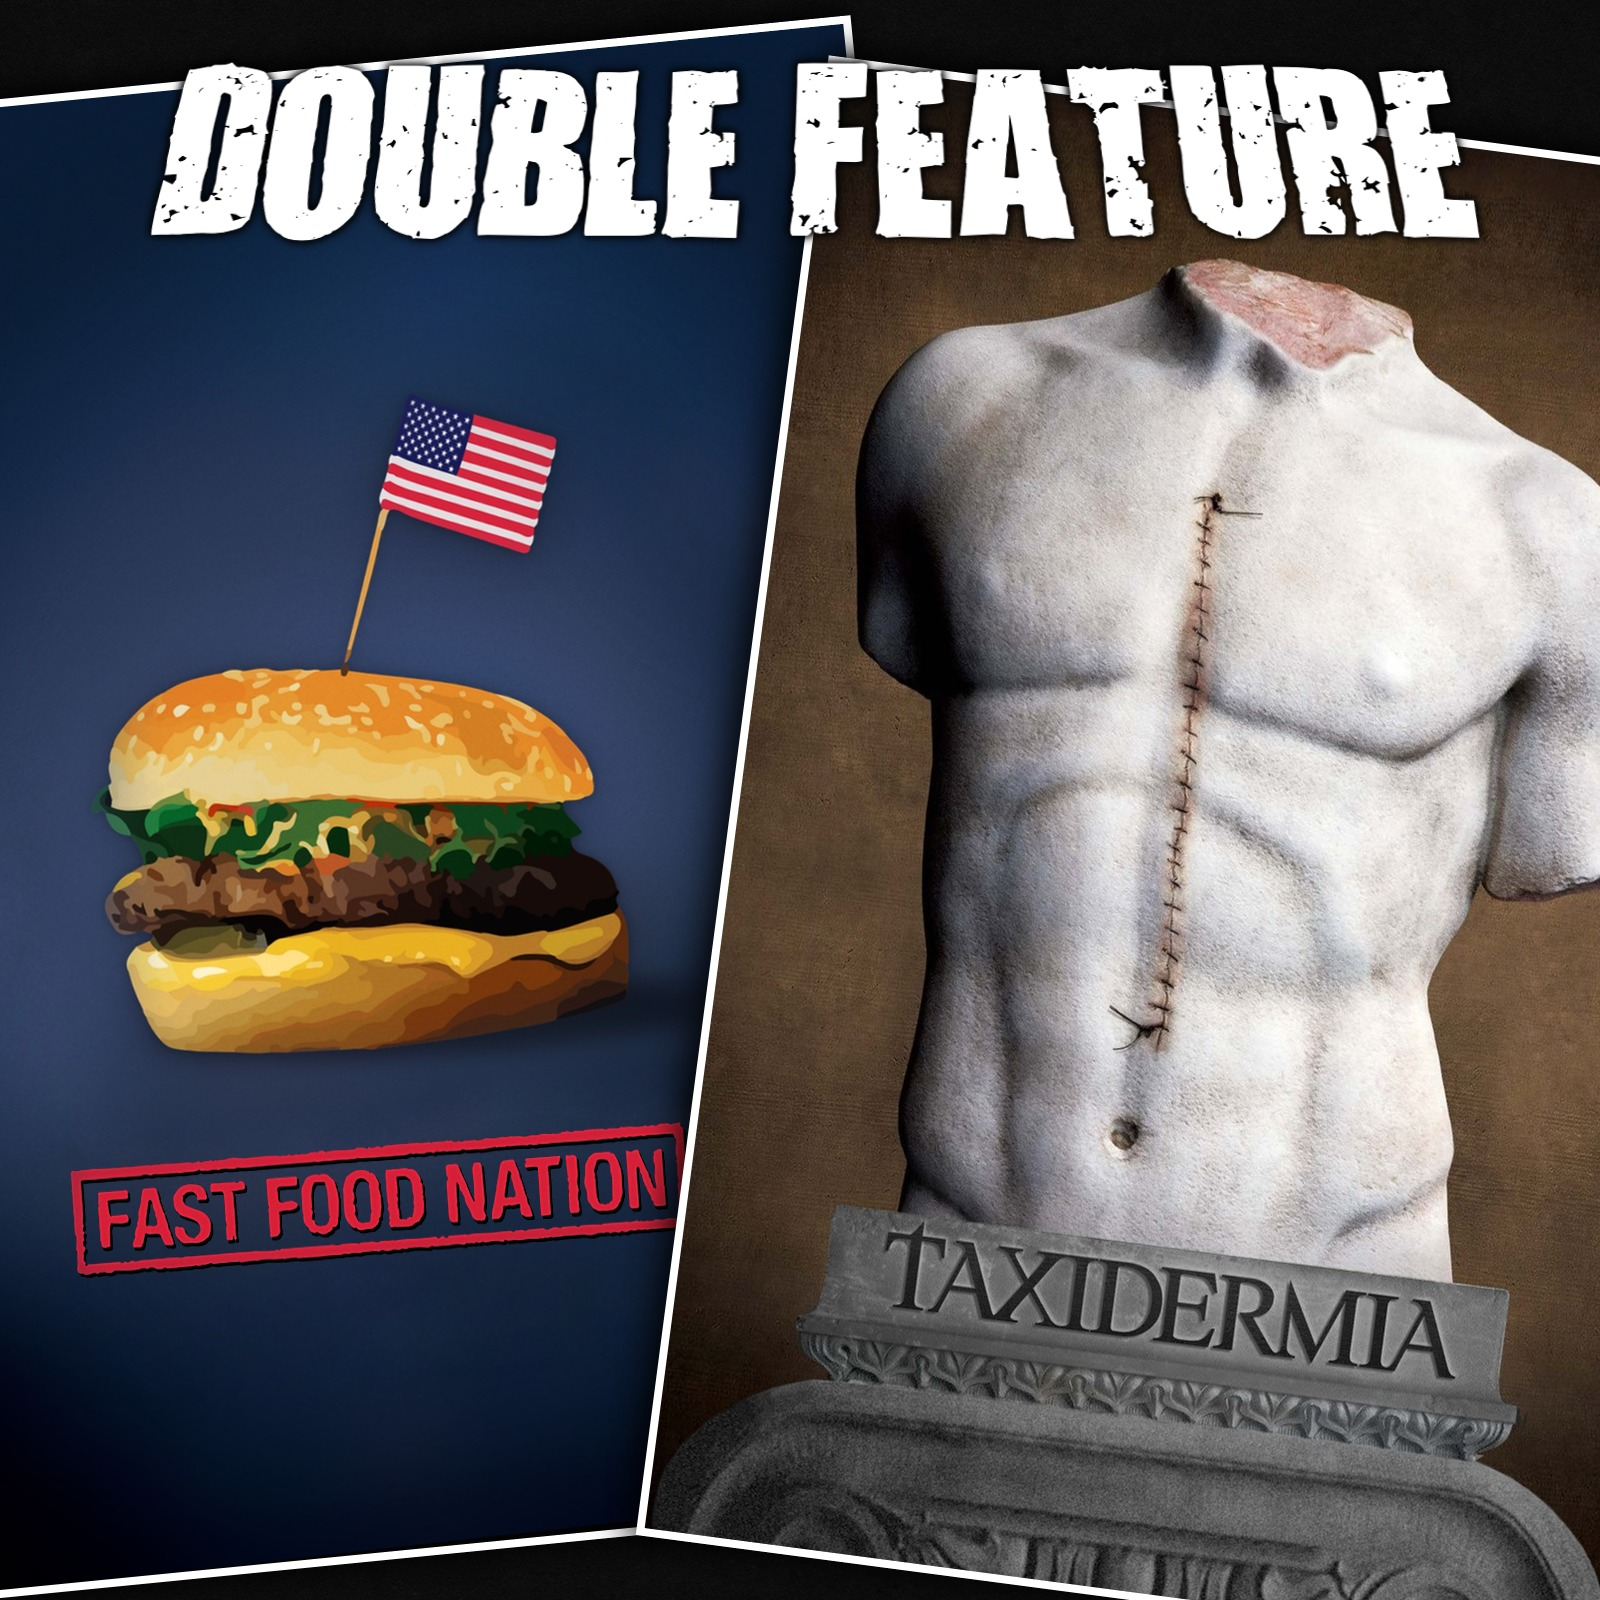 fast food nation discussion questions